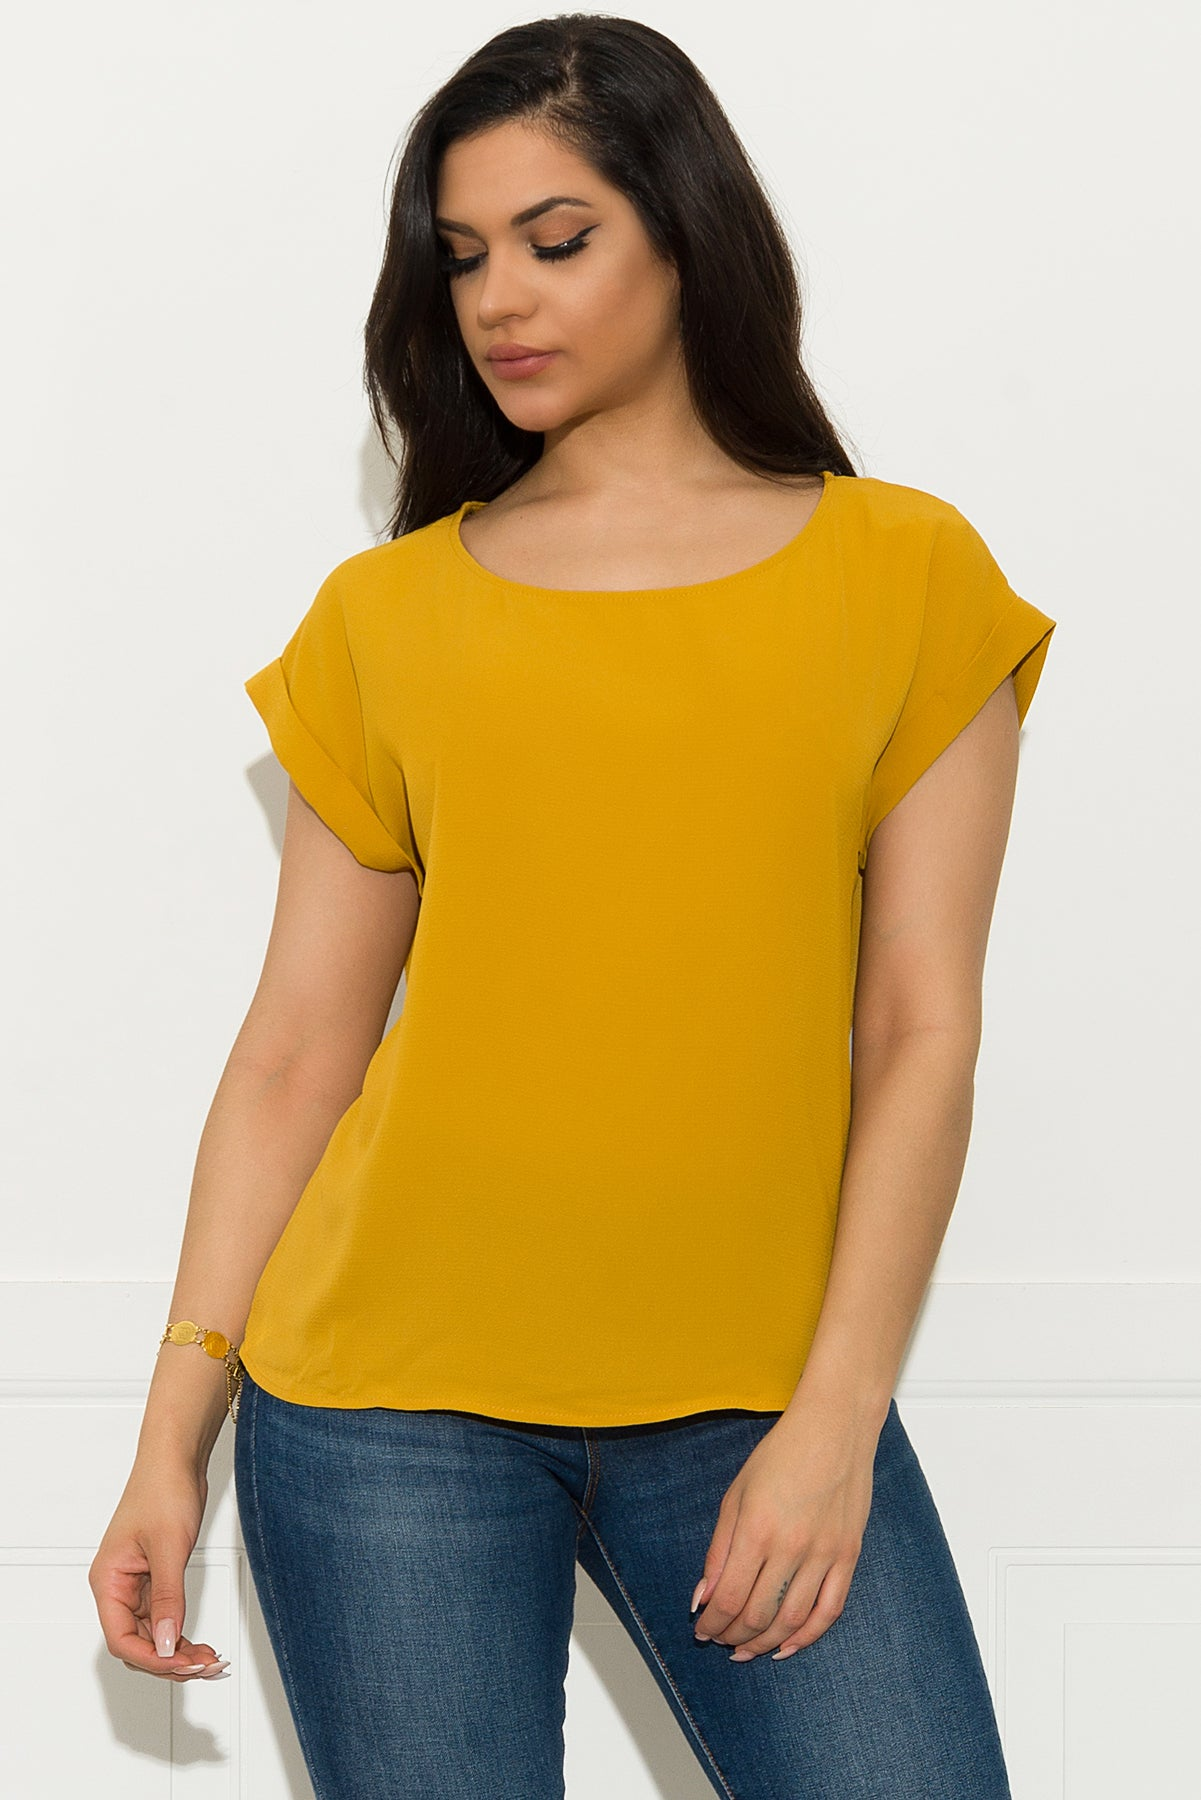 Juliana Blouse - Mustard